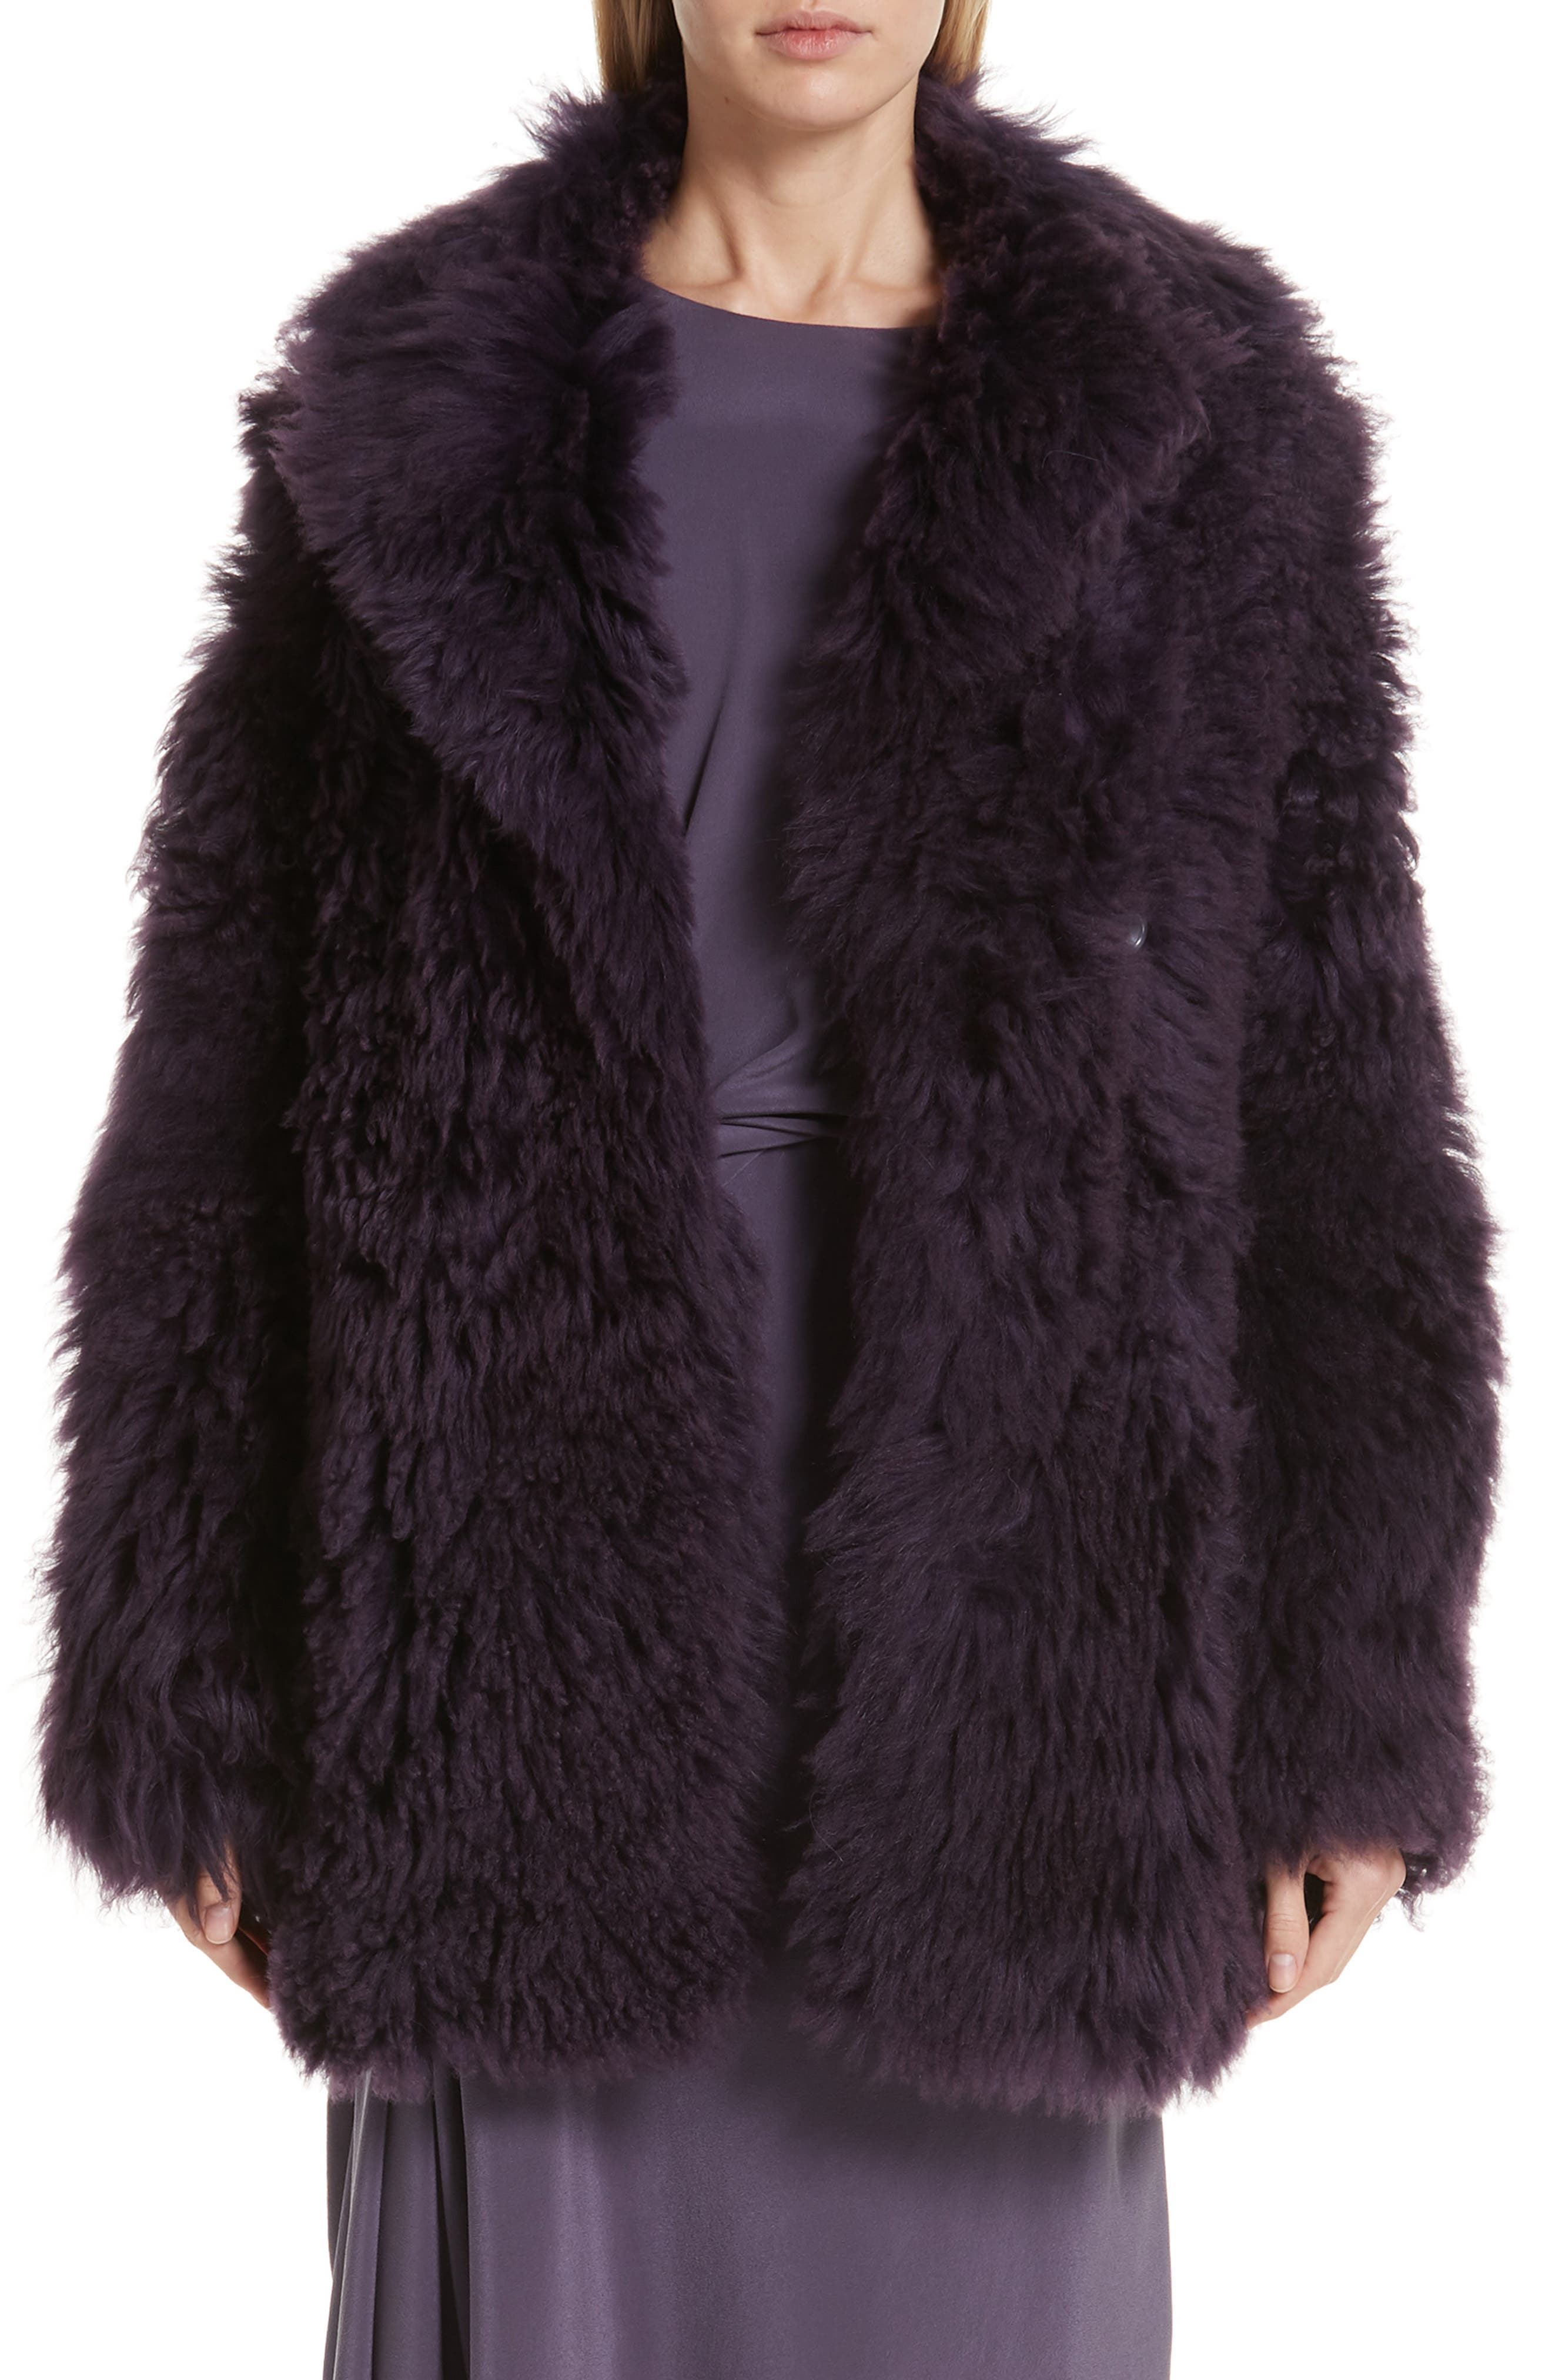 Sies Marjan Pippa Tigrado Genuine Shearling Coat